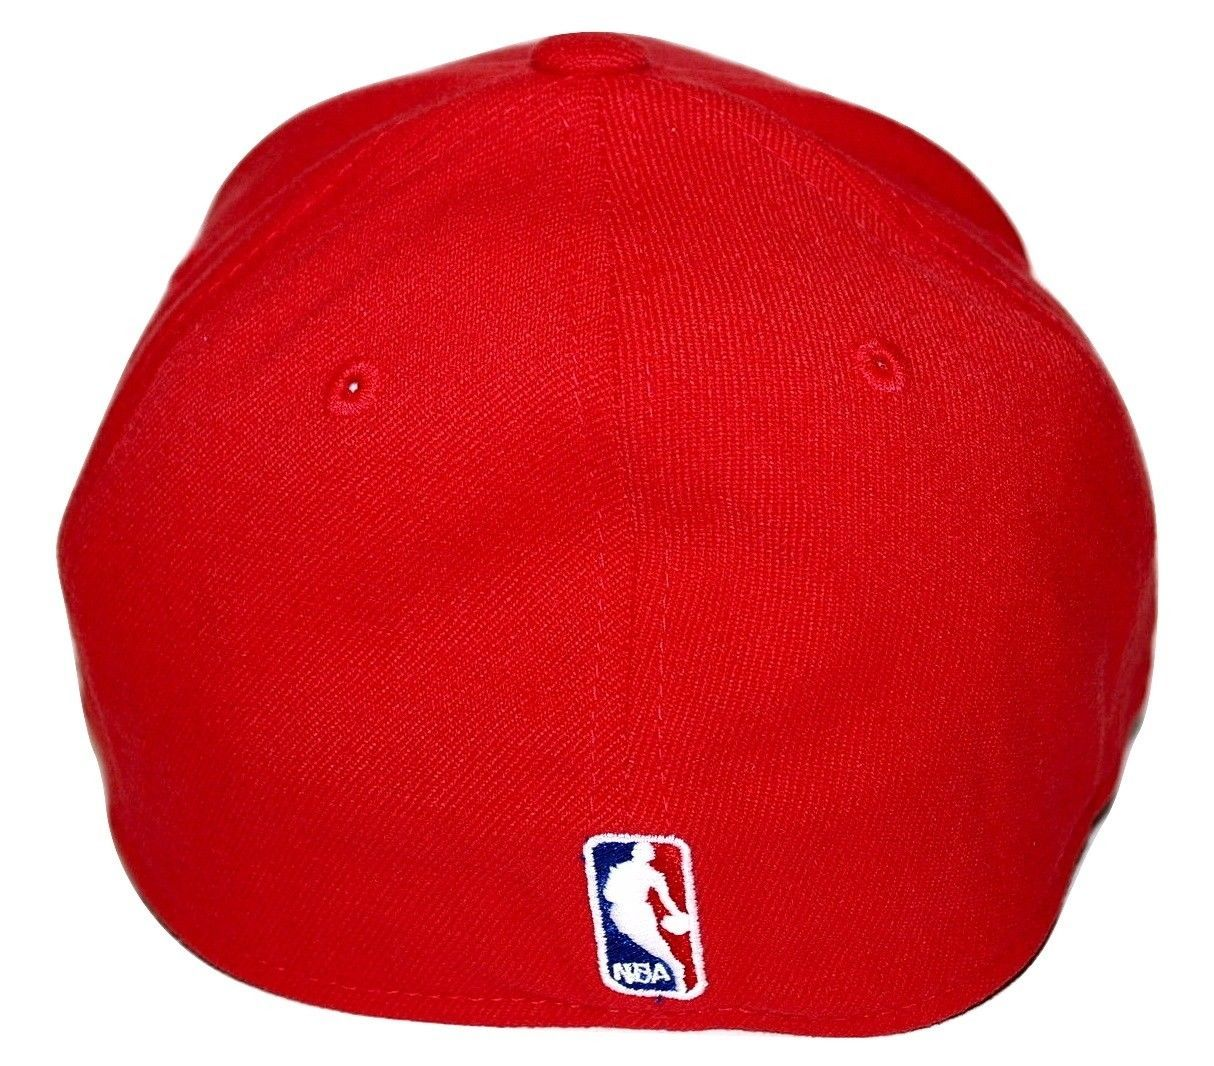 Detroit Pistons Reebok NBA Basketball Team Logo Stretch Fit Cap Hat SM MD cd3266412a4d